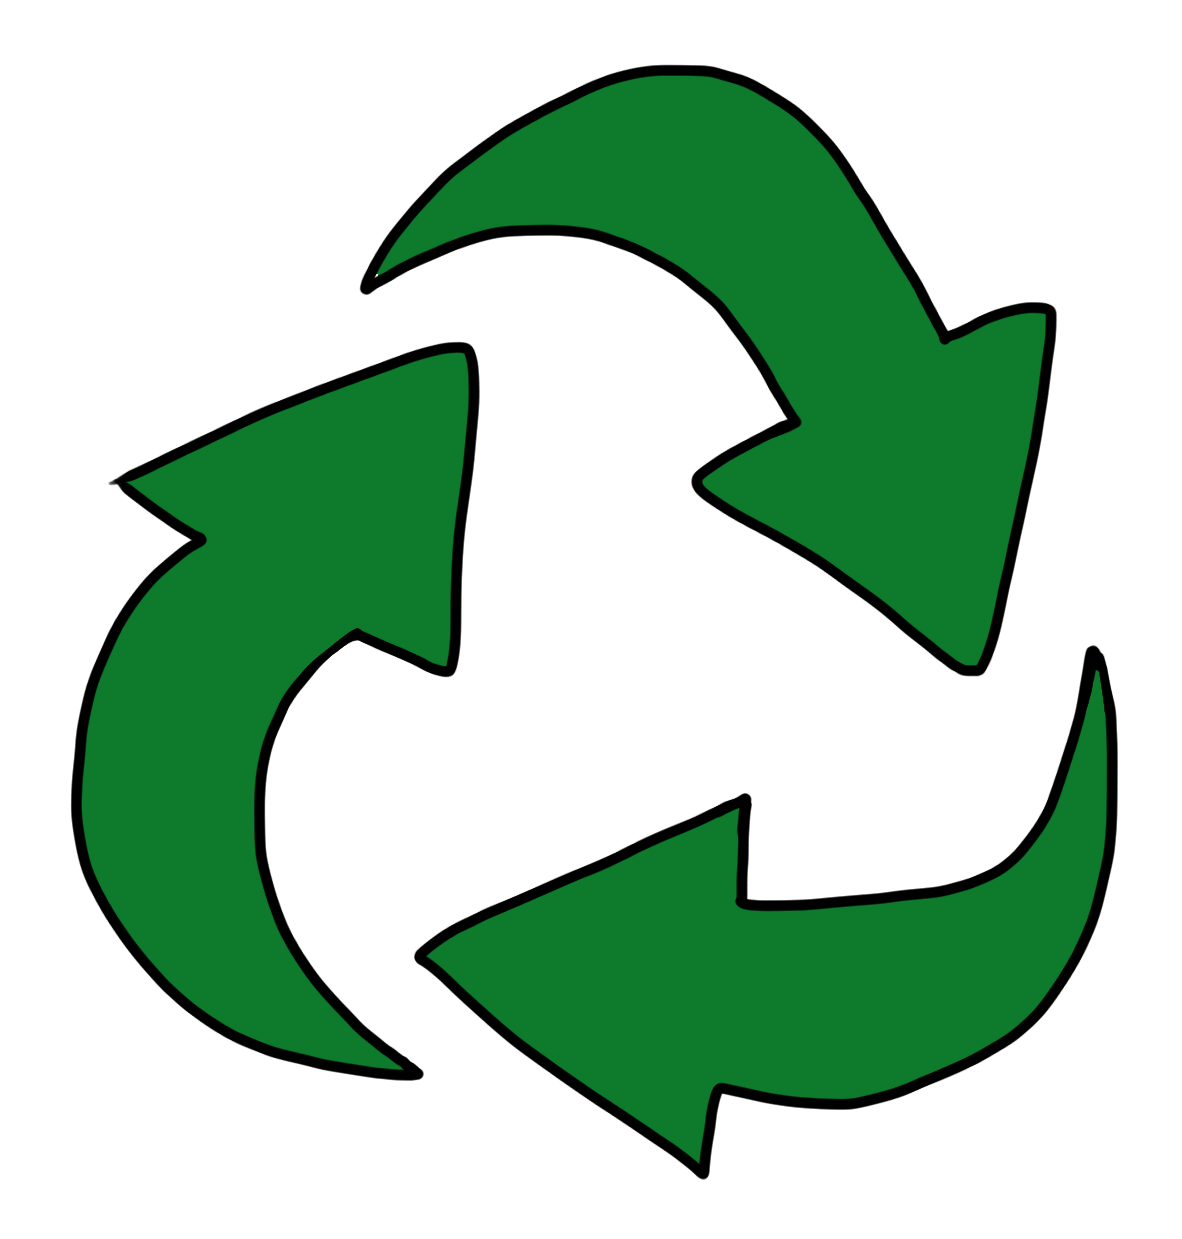 Cool Recycle Logo Recycling Symbol Clip Art icon